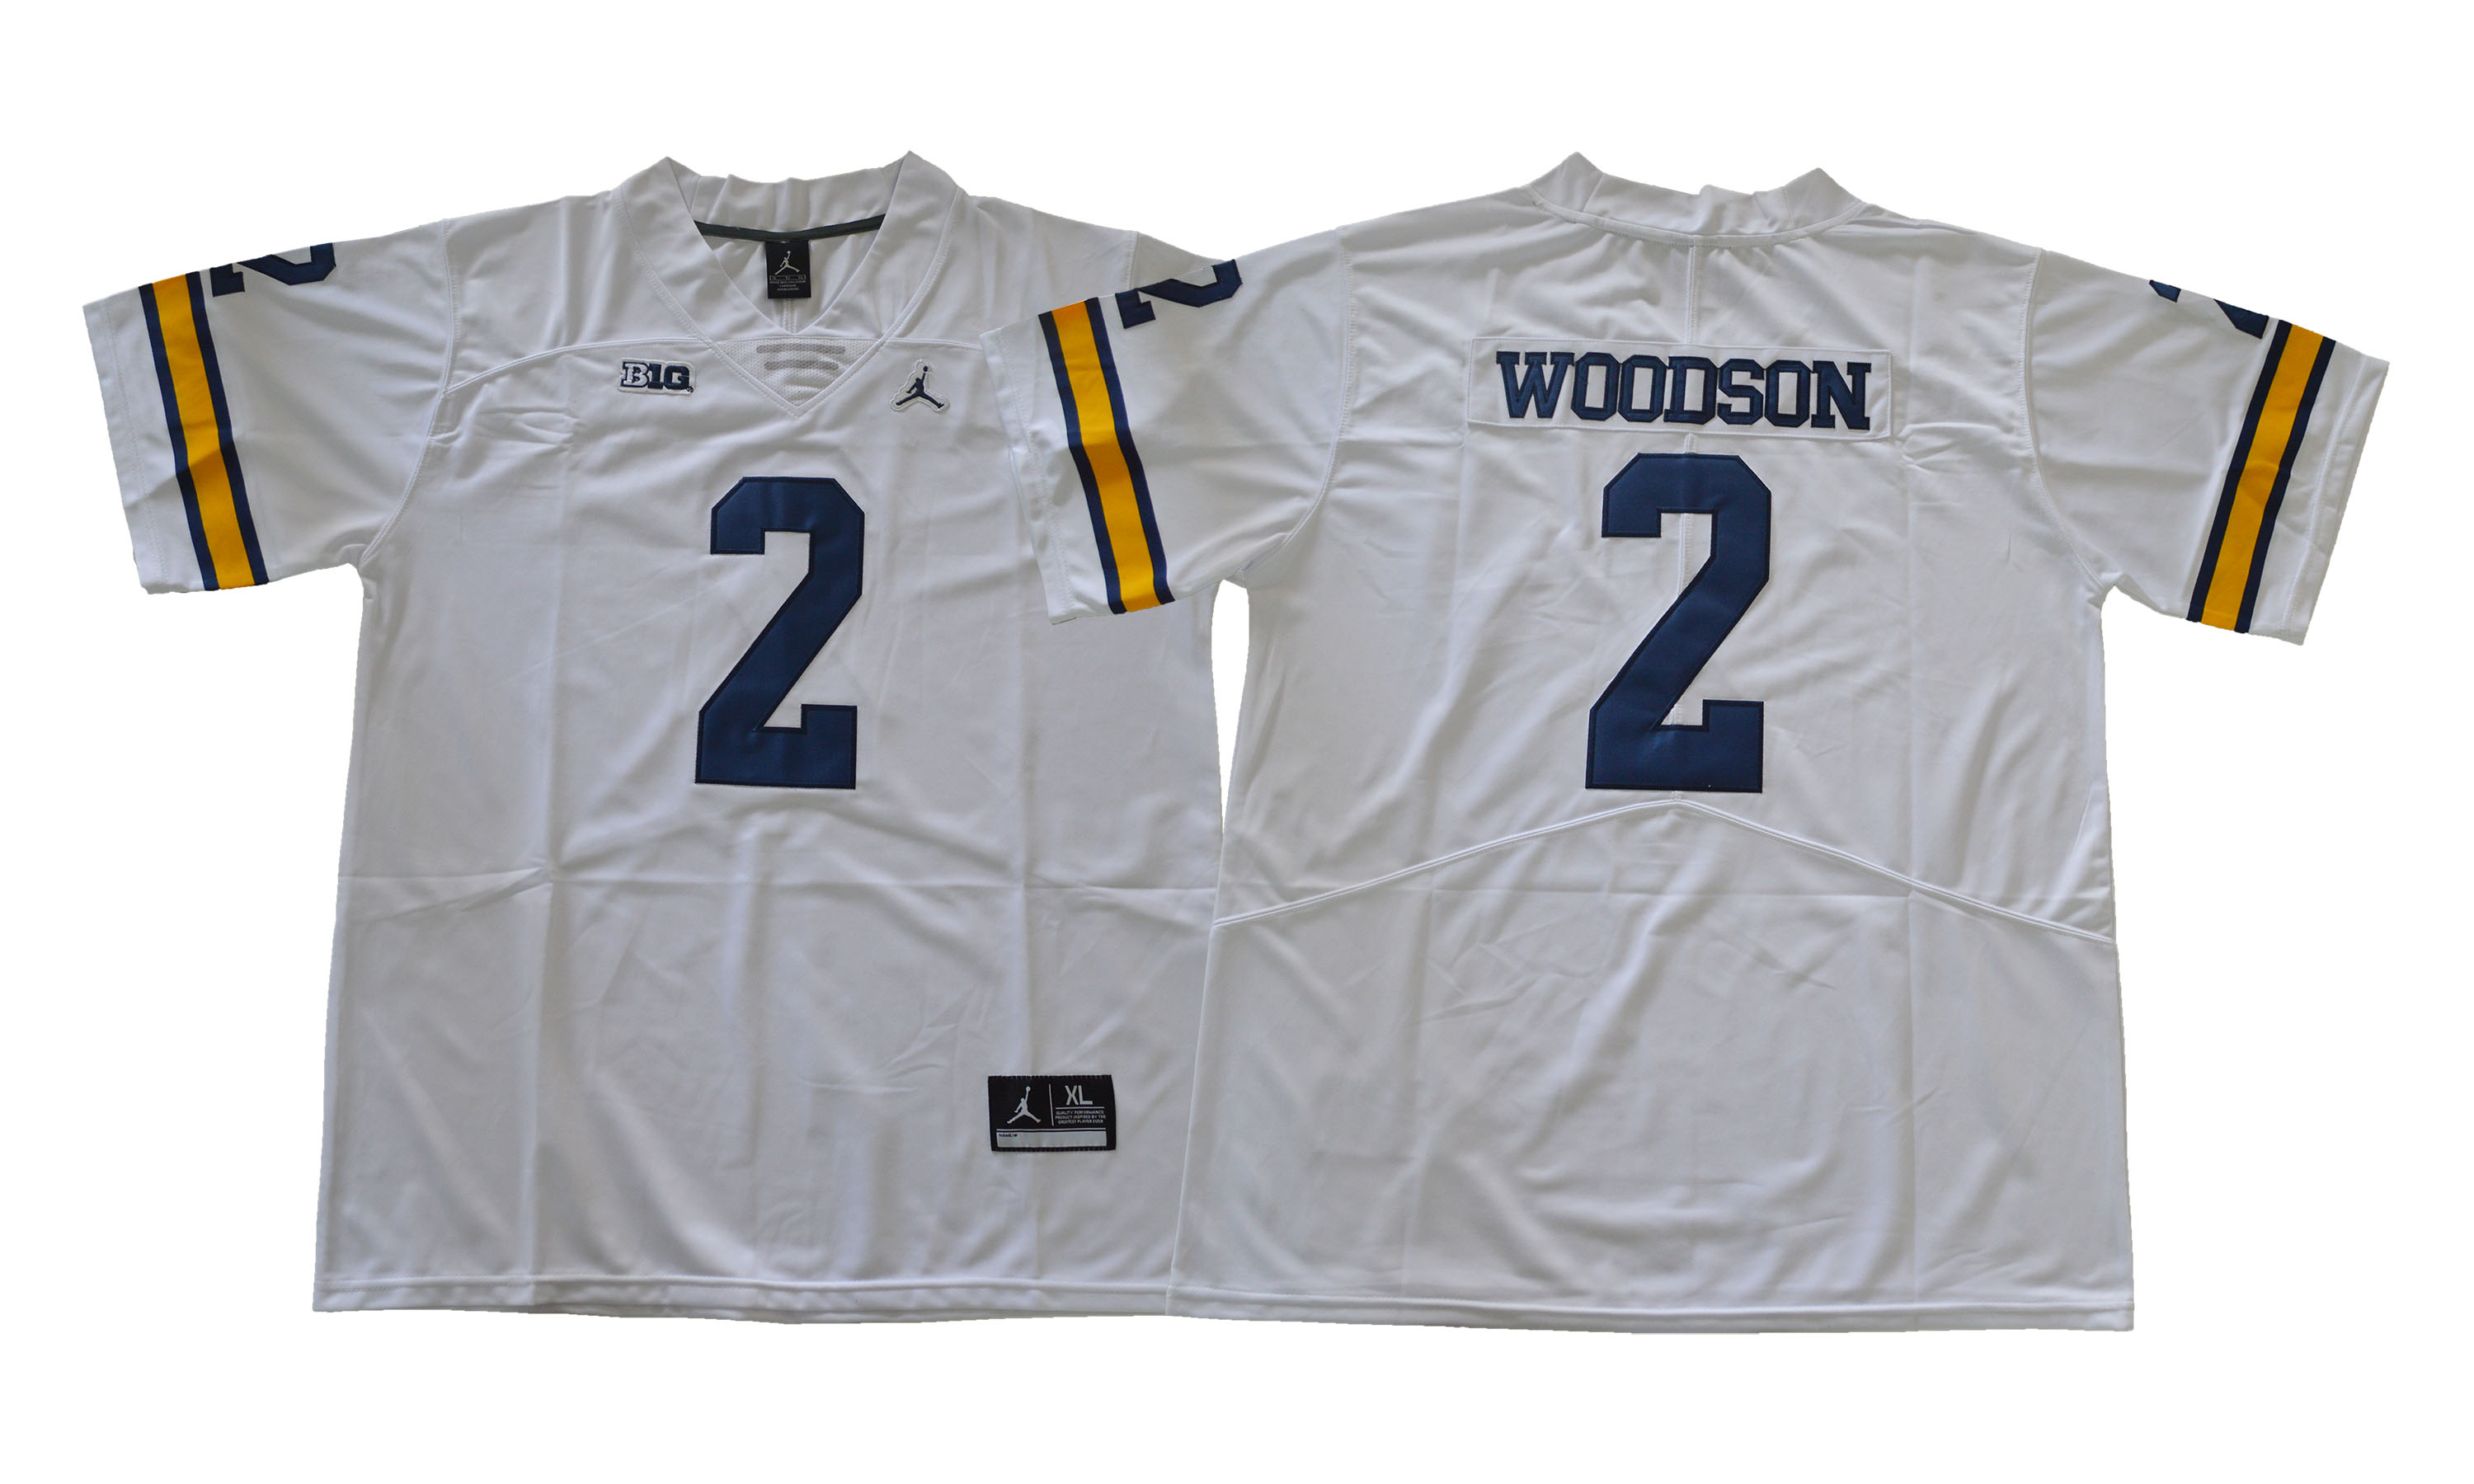 Michigan Wolverines 2 Charles Woodson White College Football Jersey